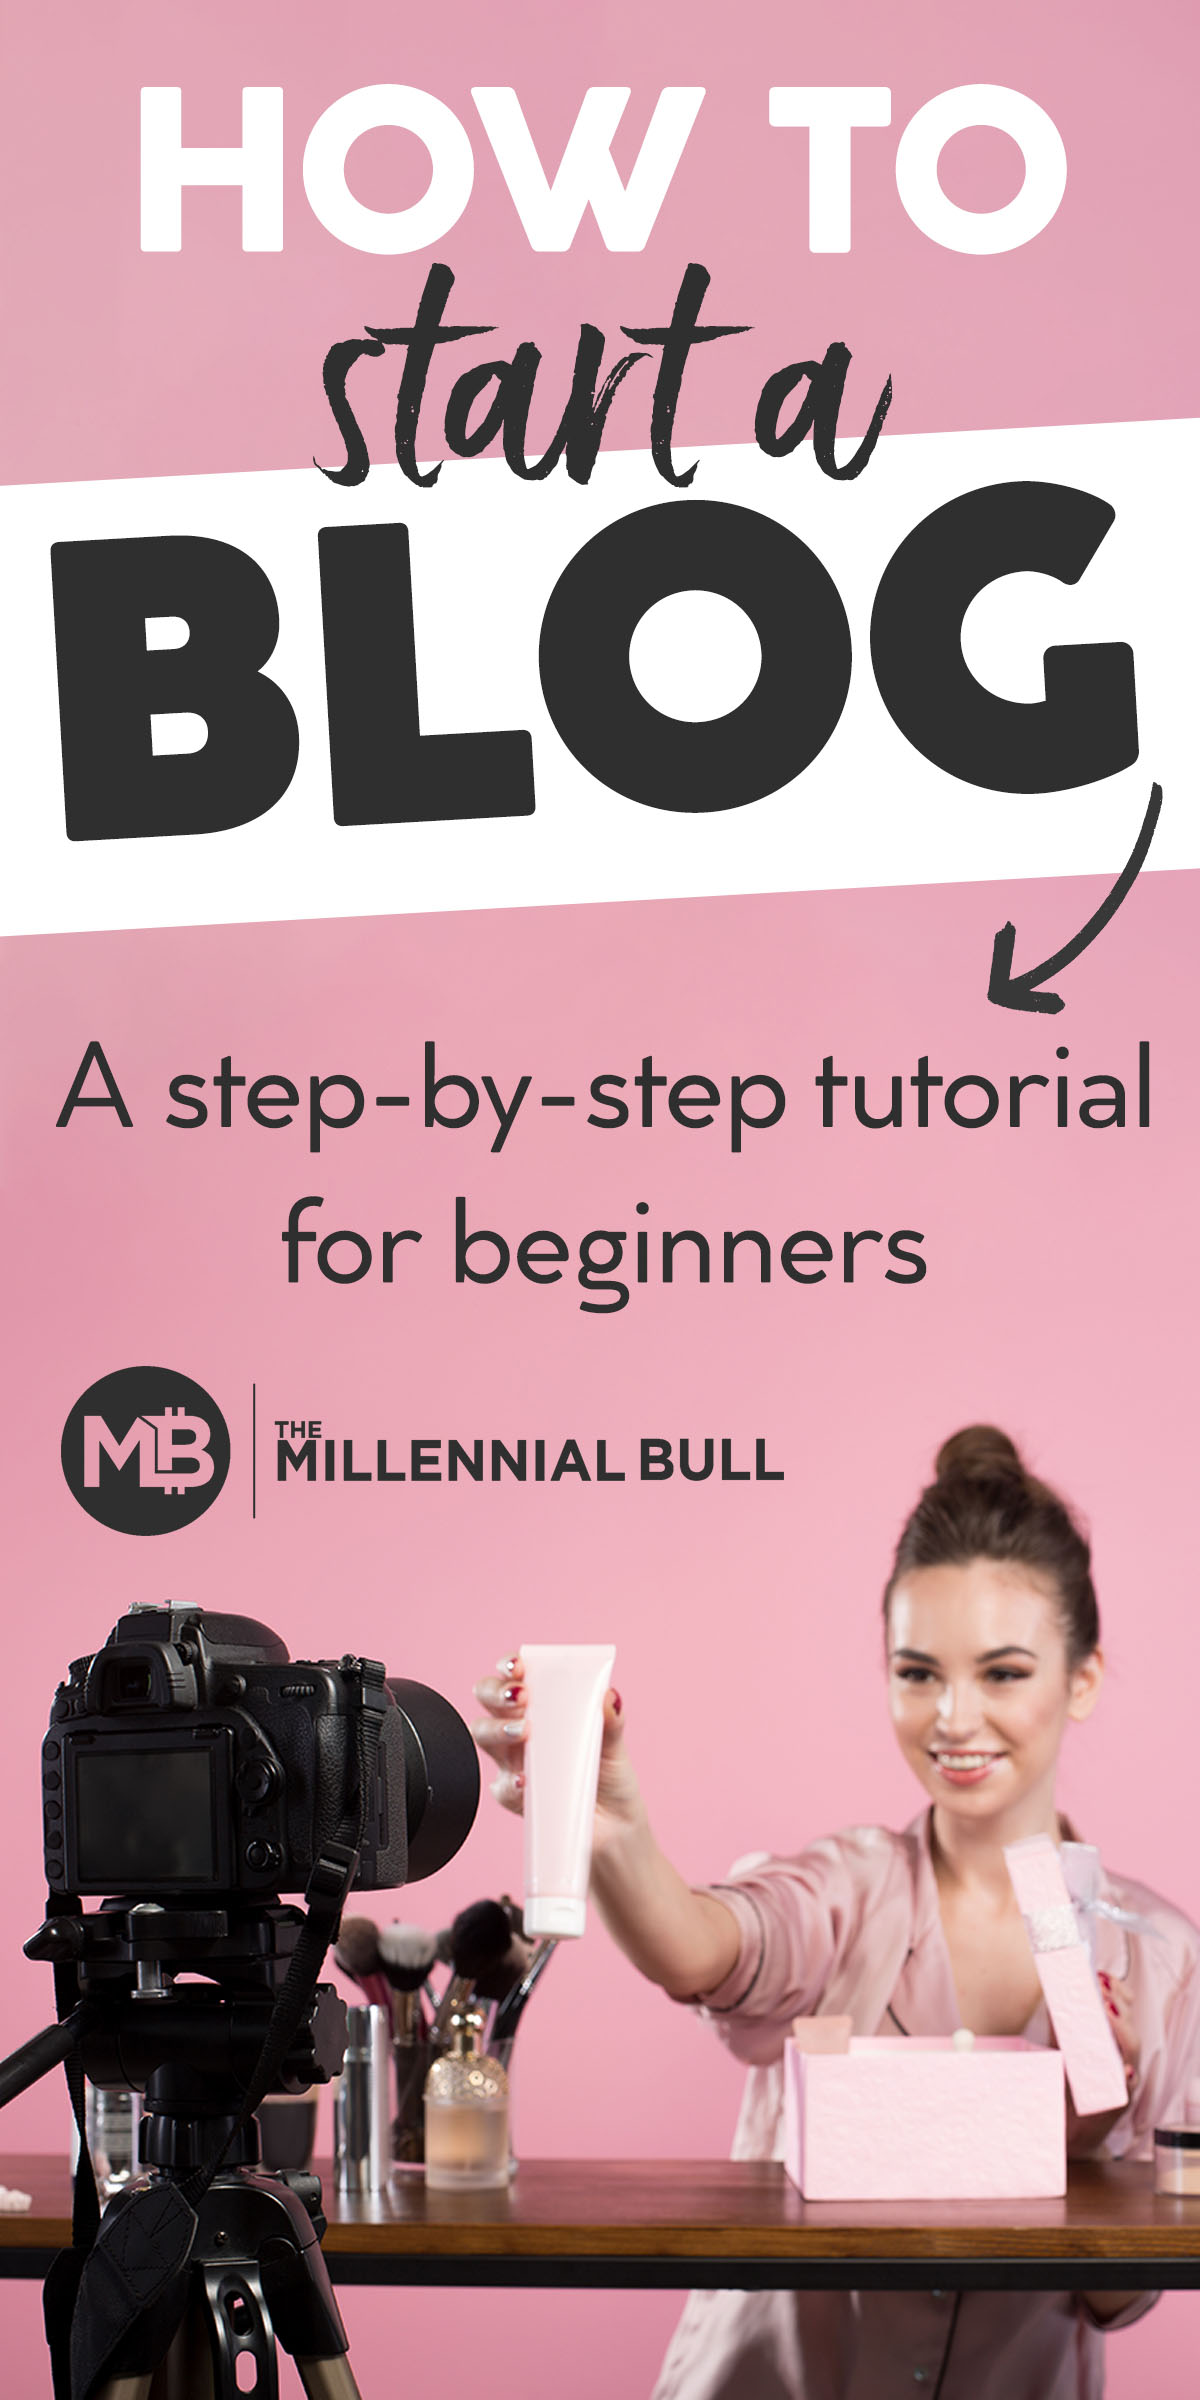 how to start a blog step by step tutorial for beginners - How To Start A Blog